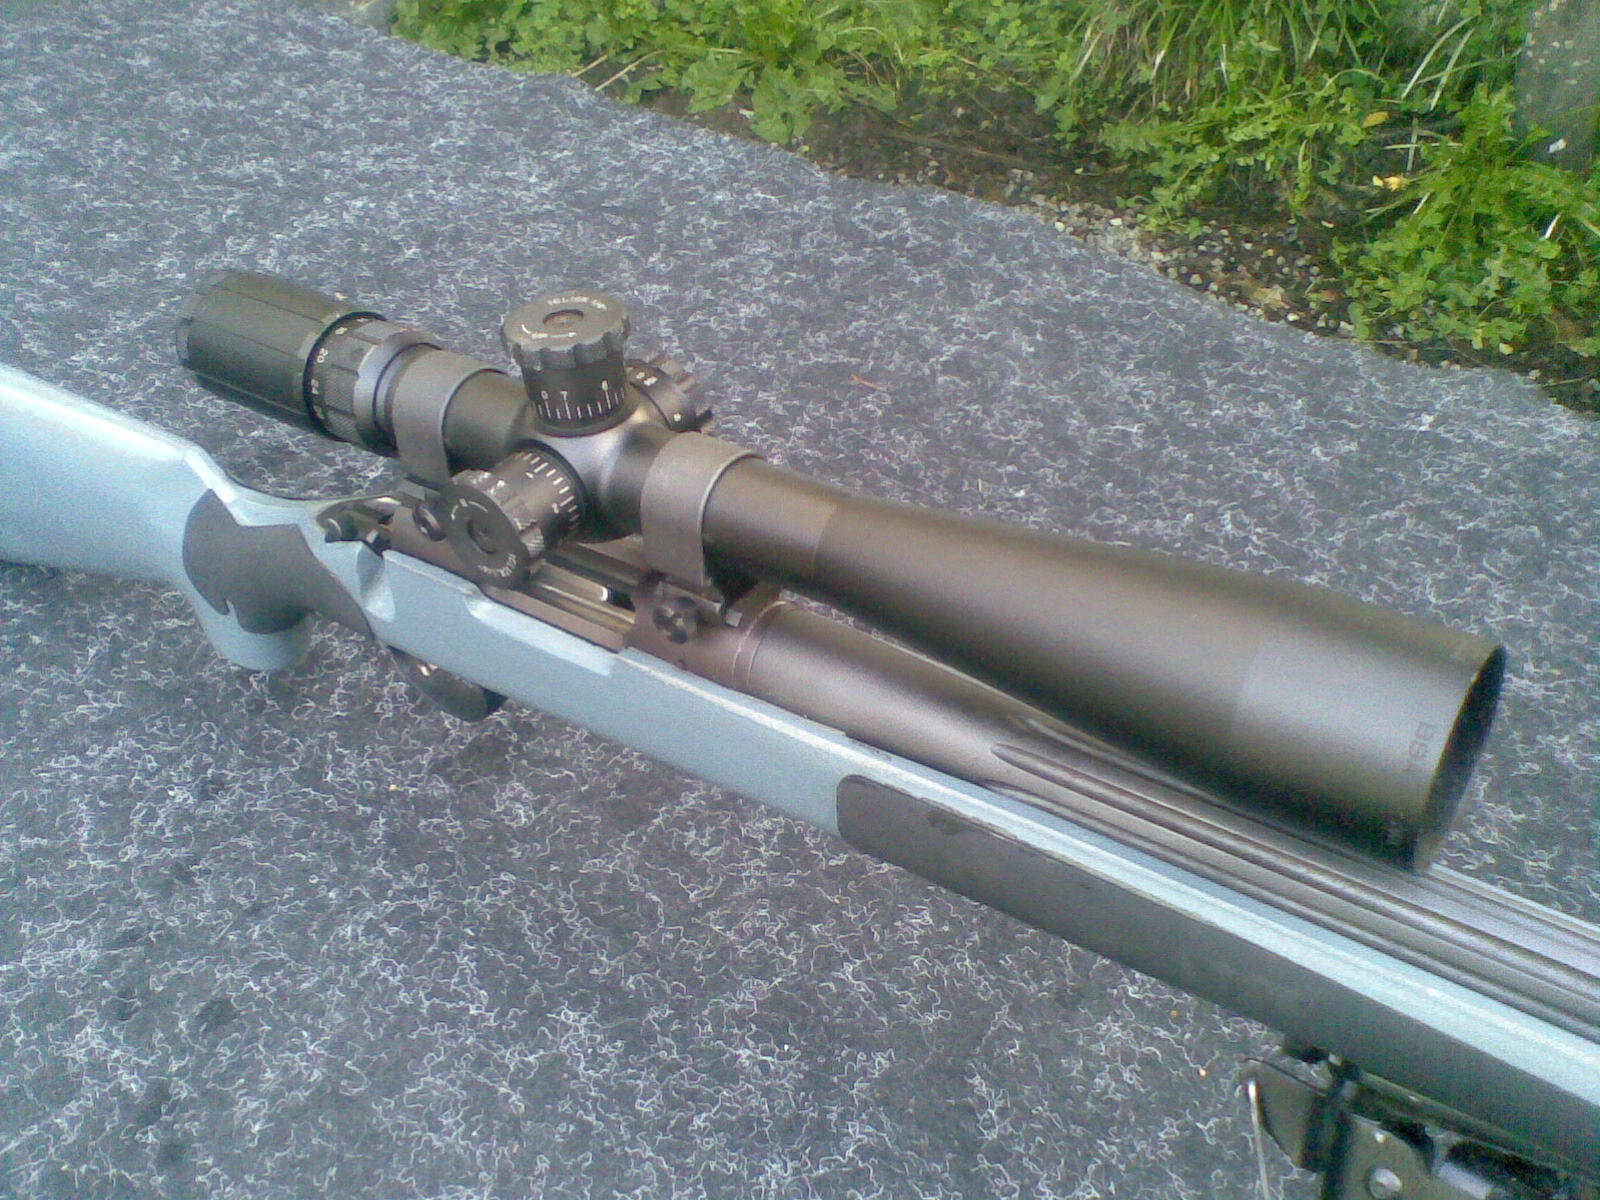 Hightec Stock and 700 Rem bull barrel with heavy suppressor